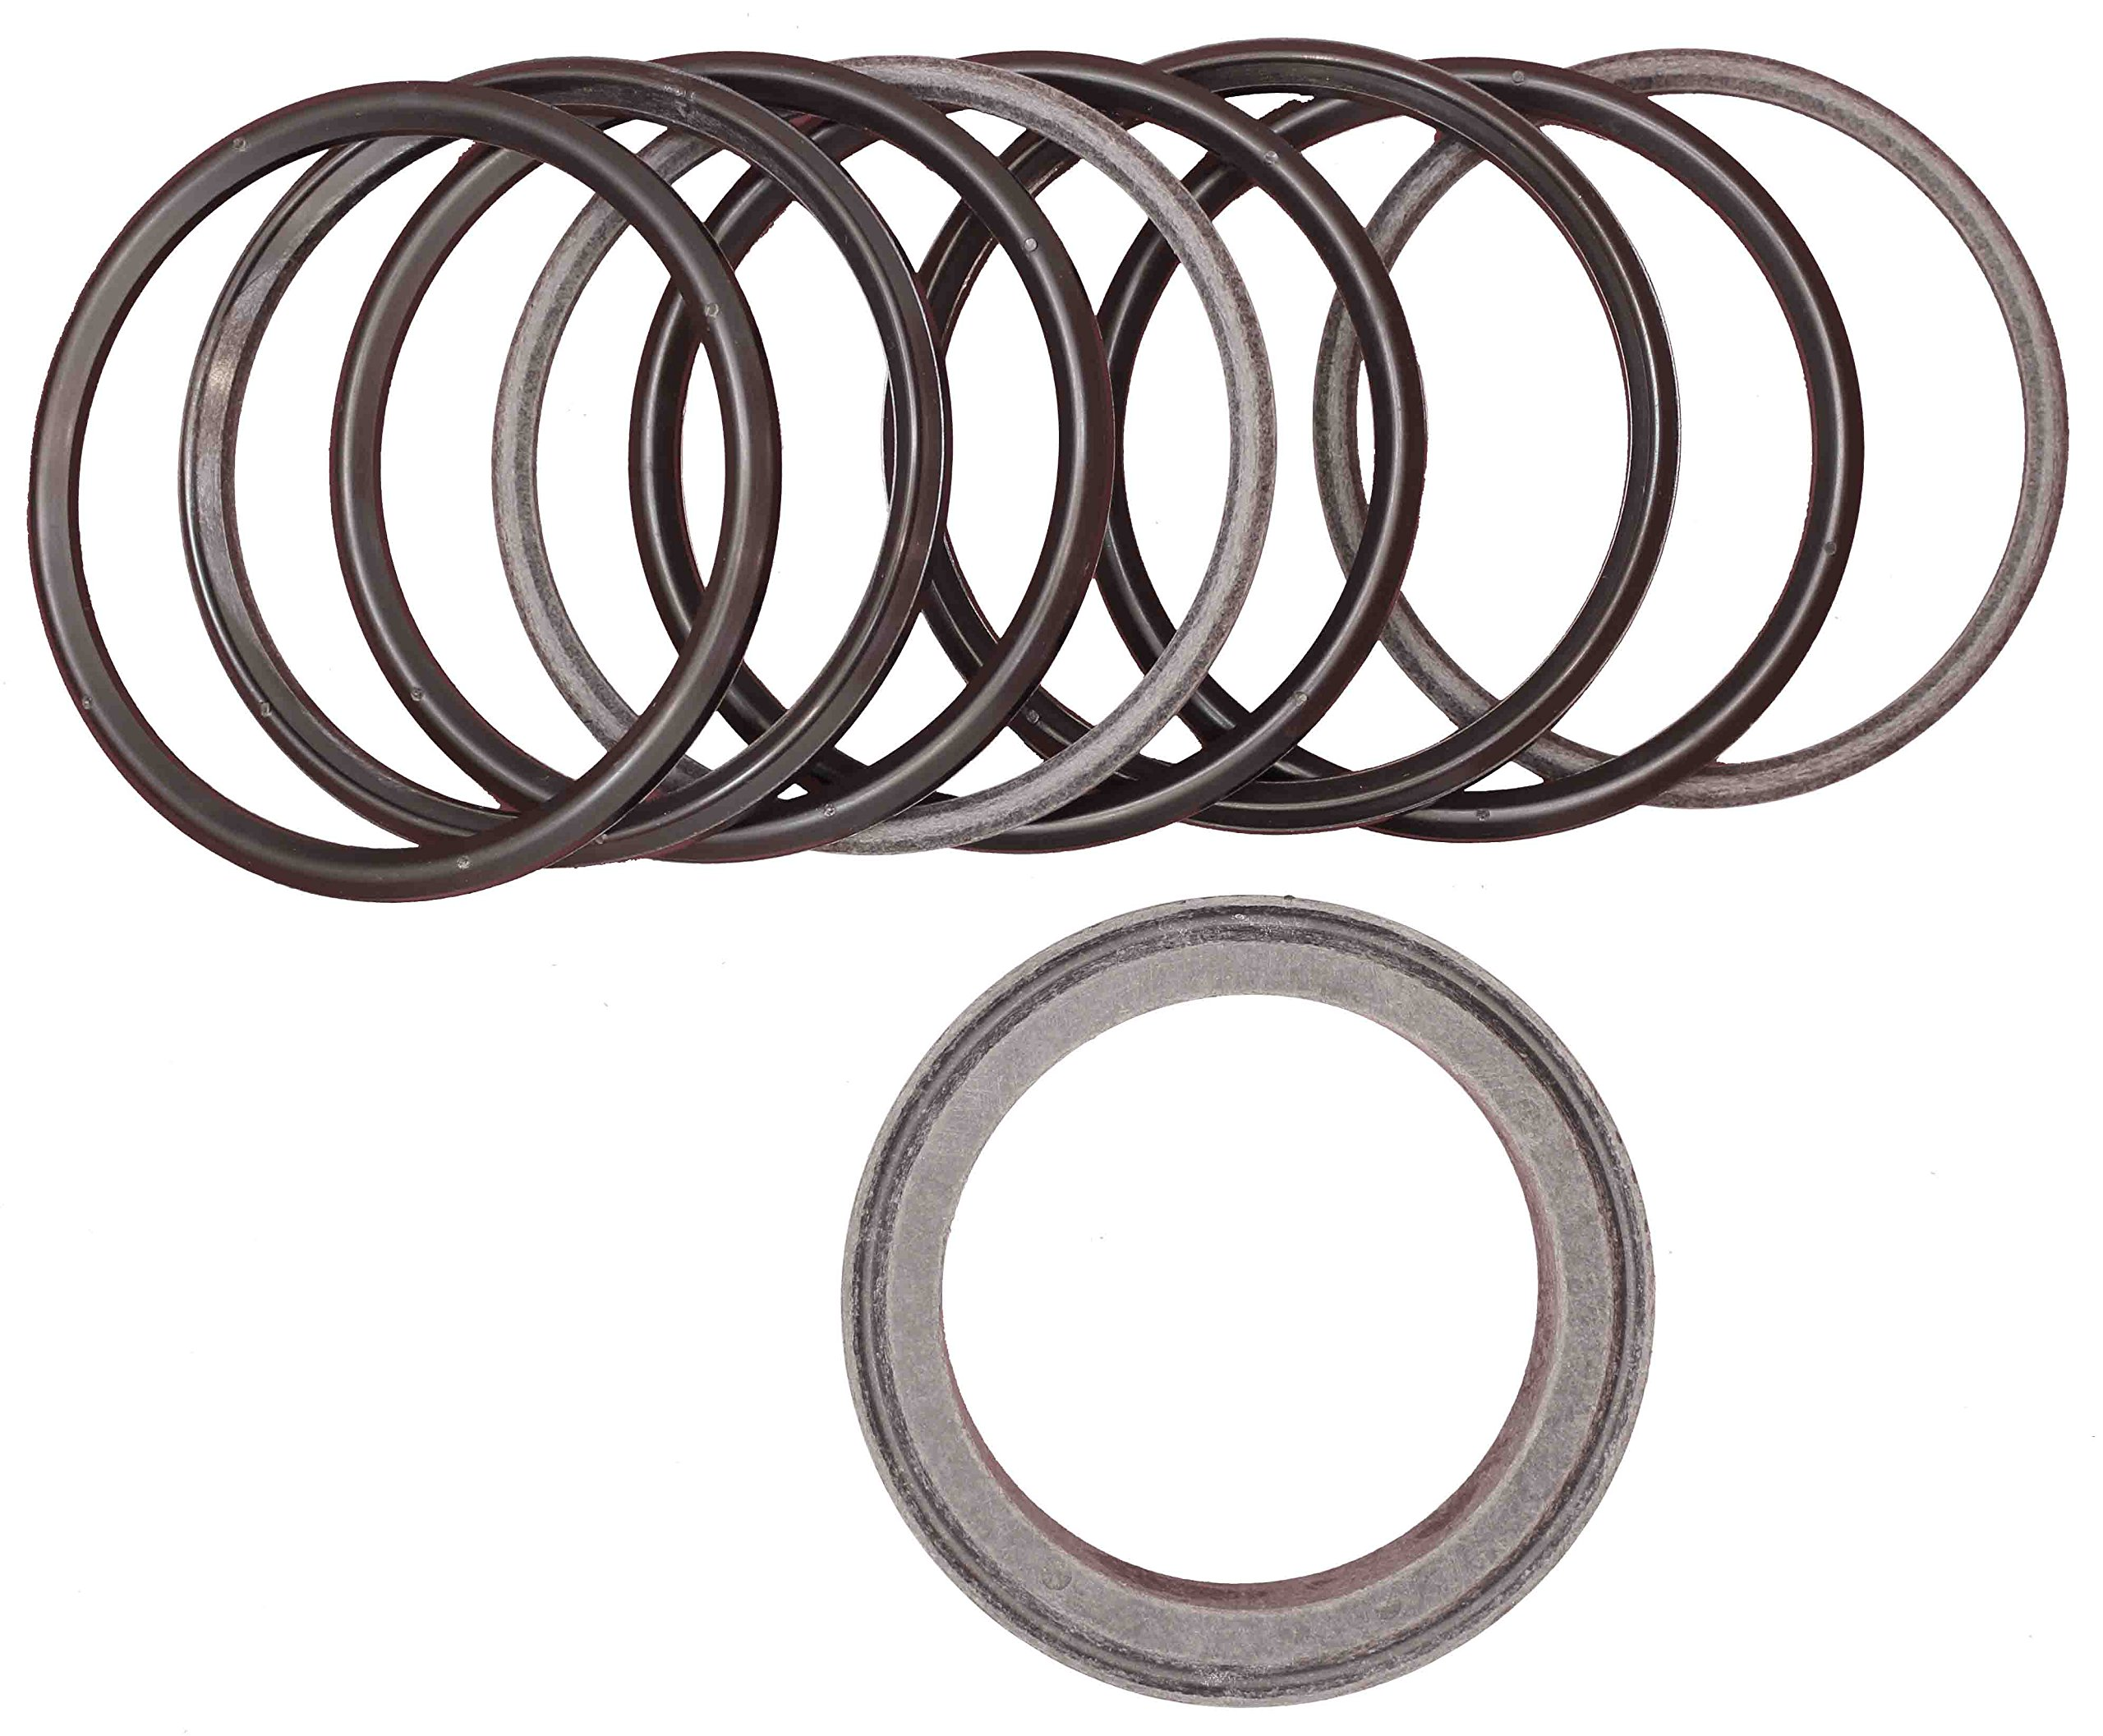 CASE G33239 HYDRAULIC CYLINDER SEAL KIT (PACKING ASSEMBLY)